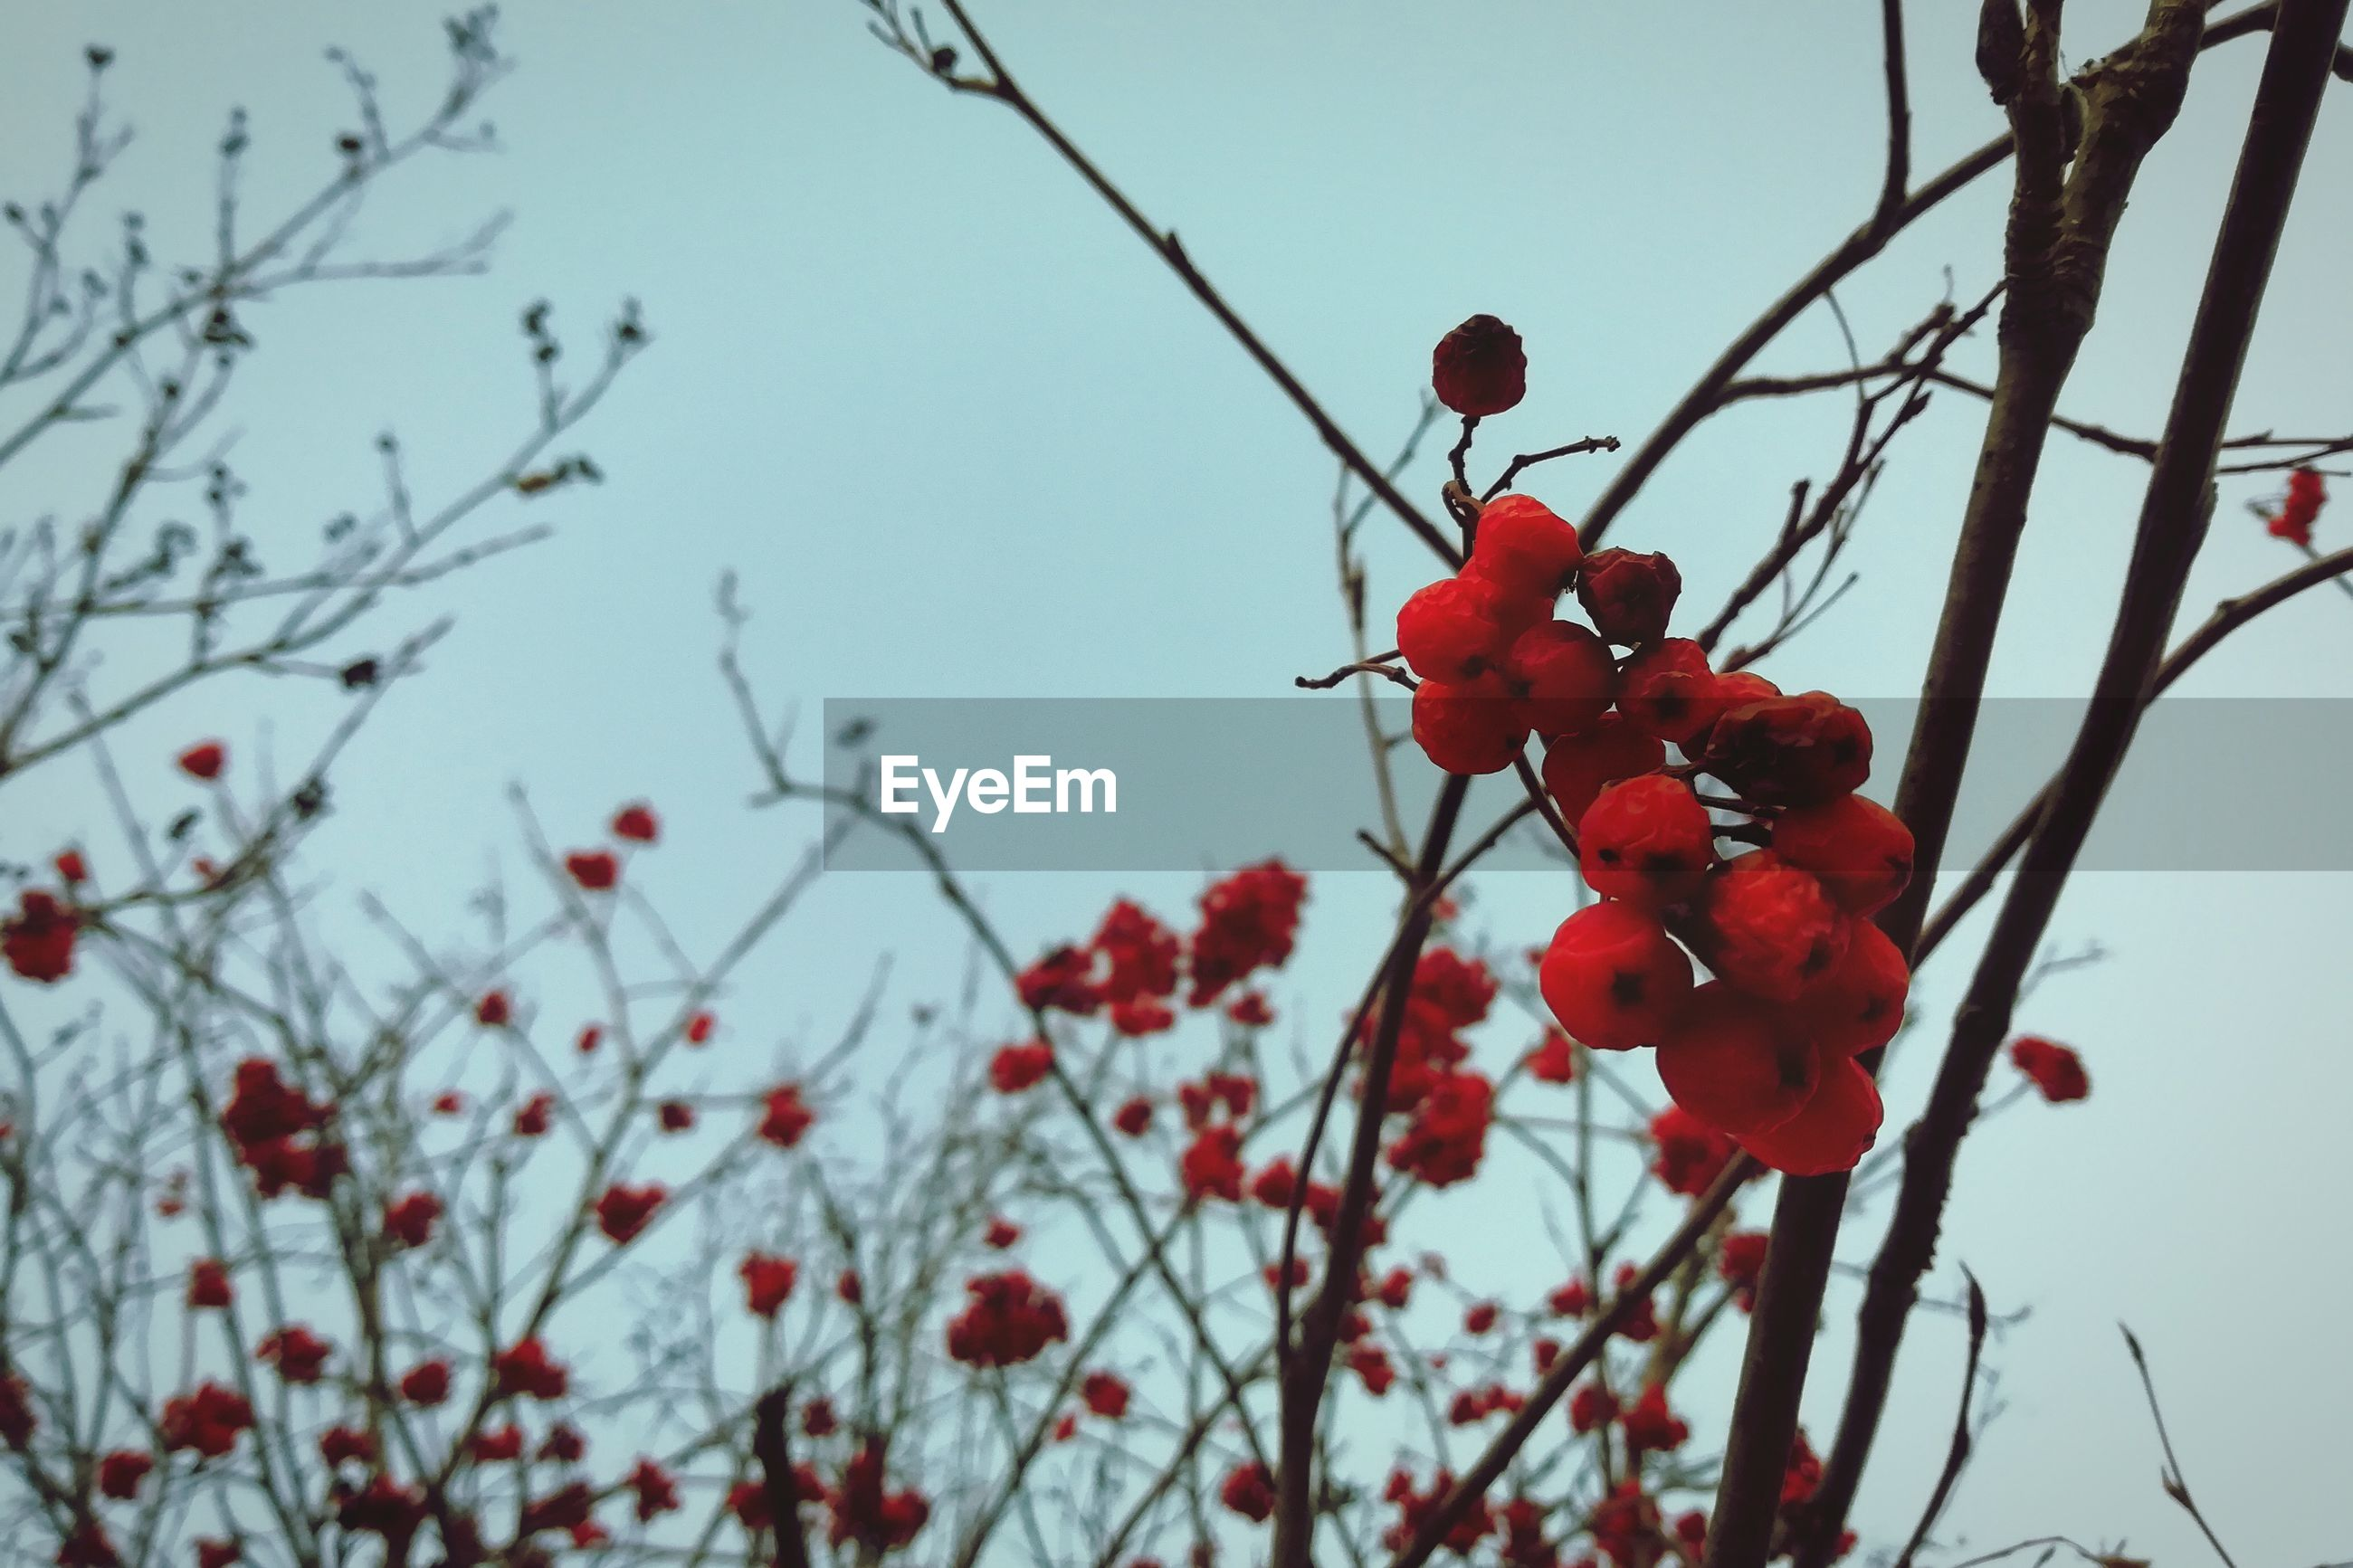 red, berry fruit, fruit, tree, healthy eating, plant, growth, food, focus on foreground, branch, food and drink, nature, close-up, day, freshness, low angle view, no people, twig, beauty in nature, wellbeing, outdoors, rowanberry, red currant